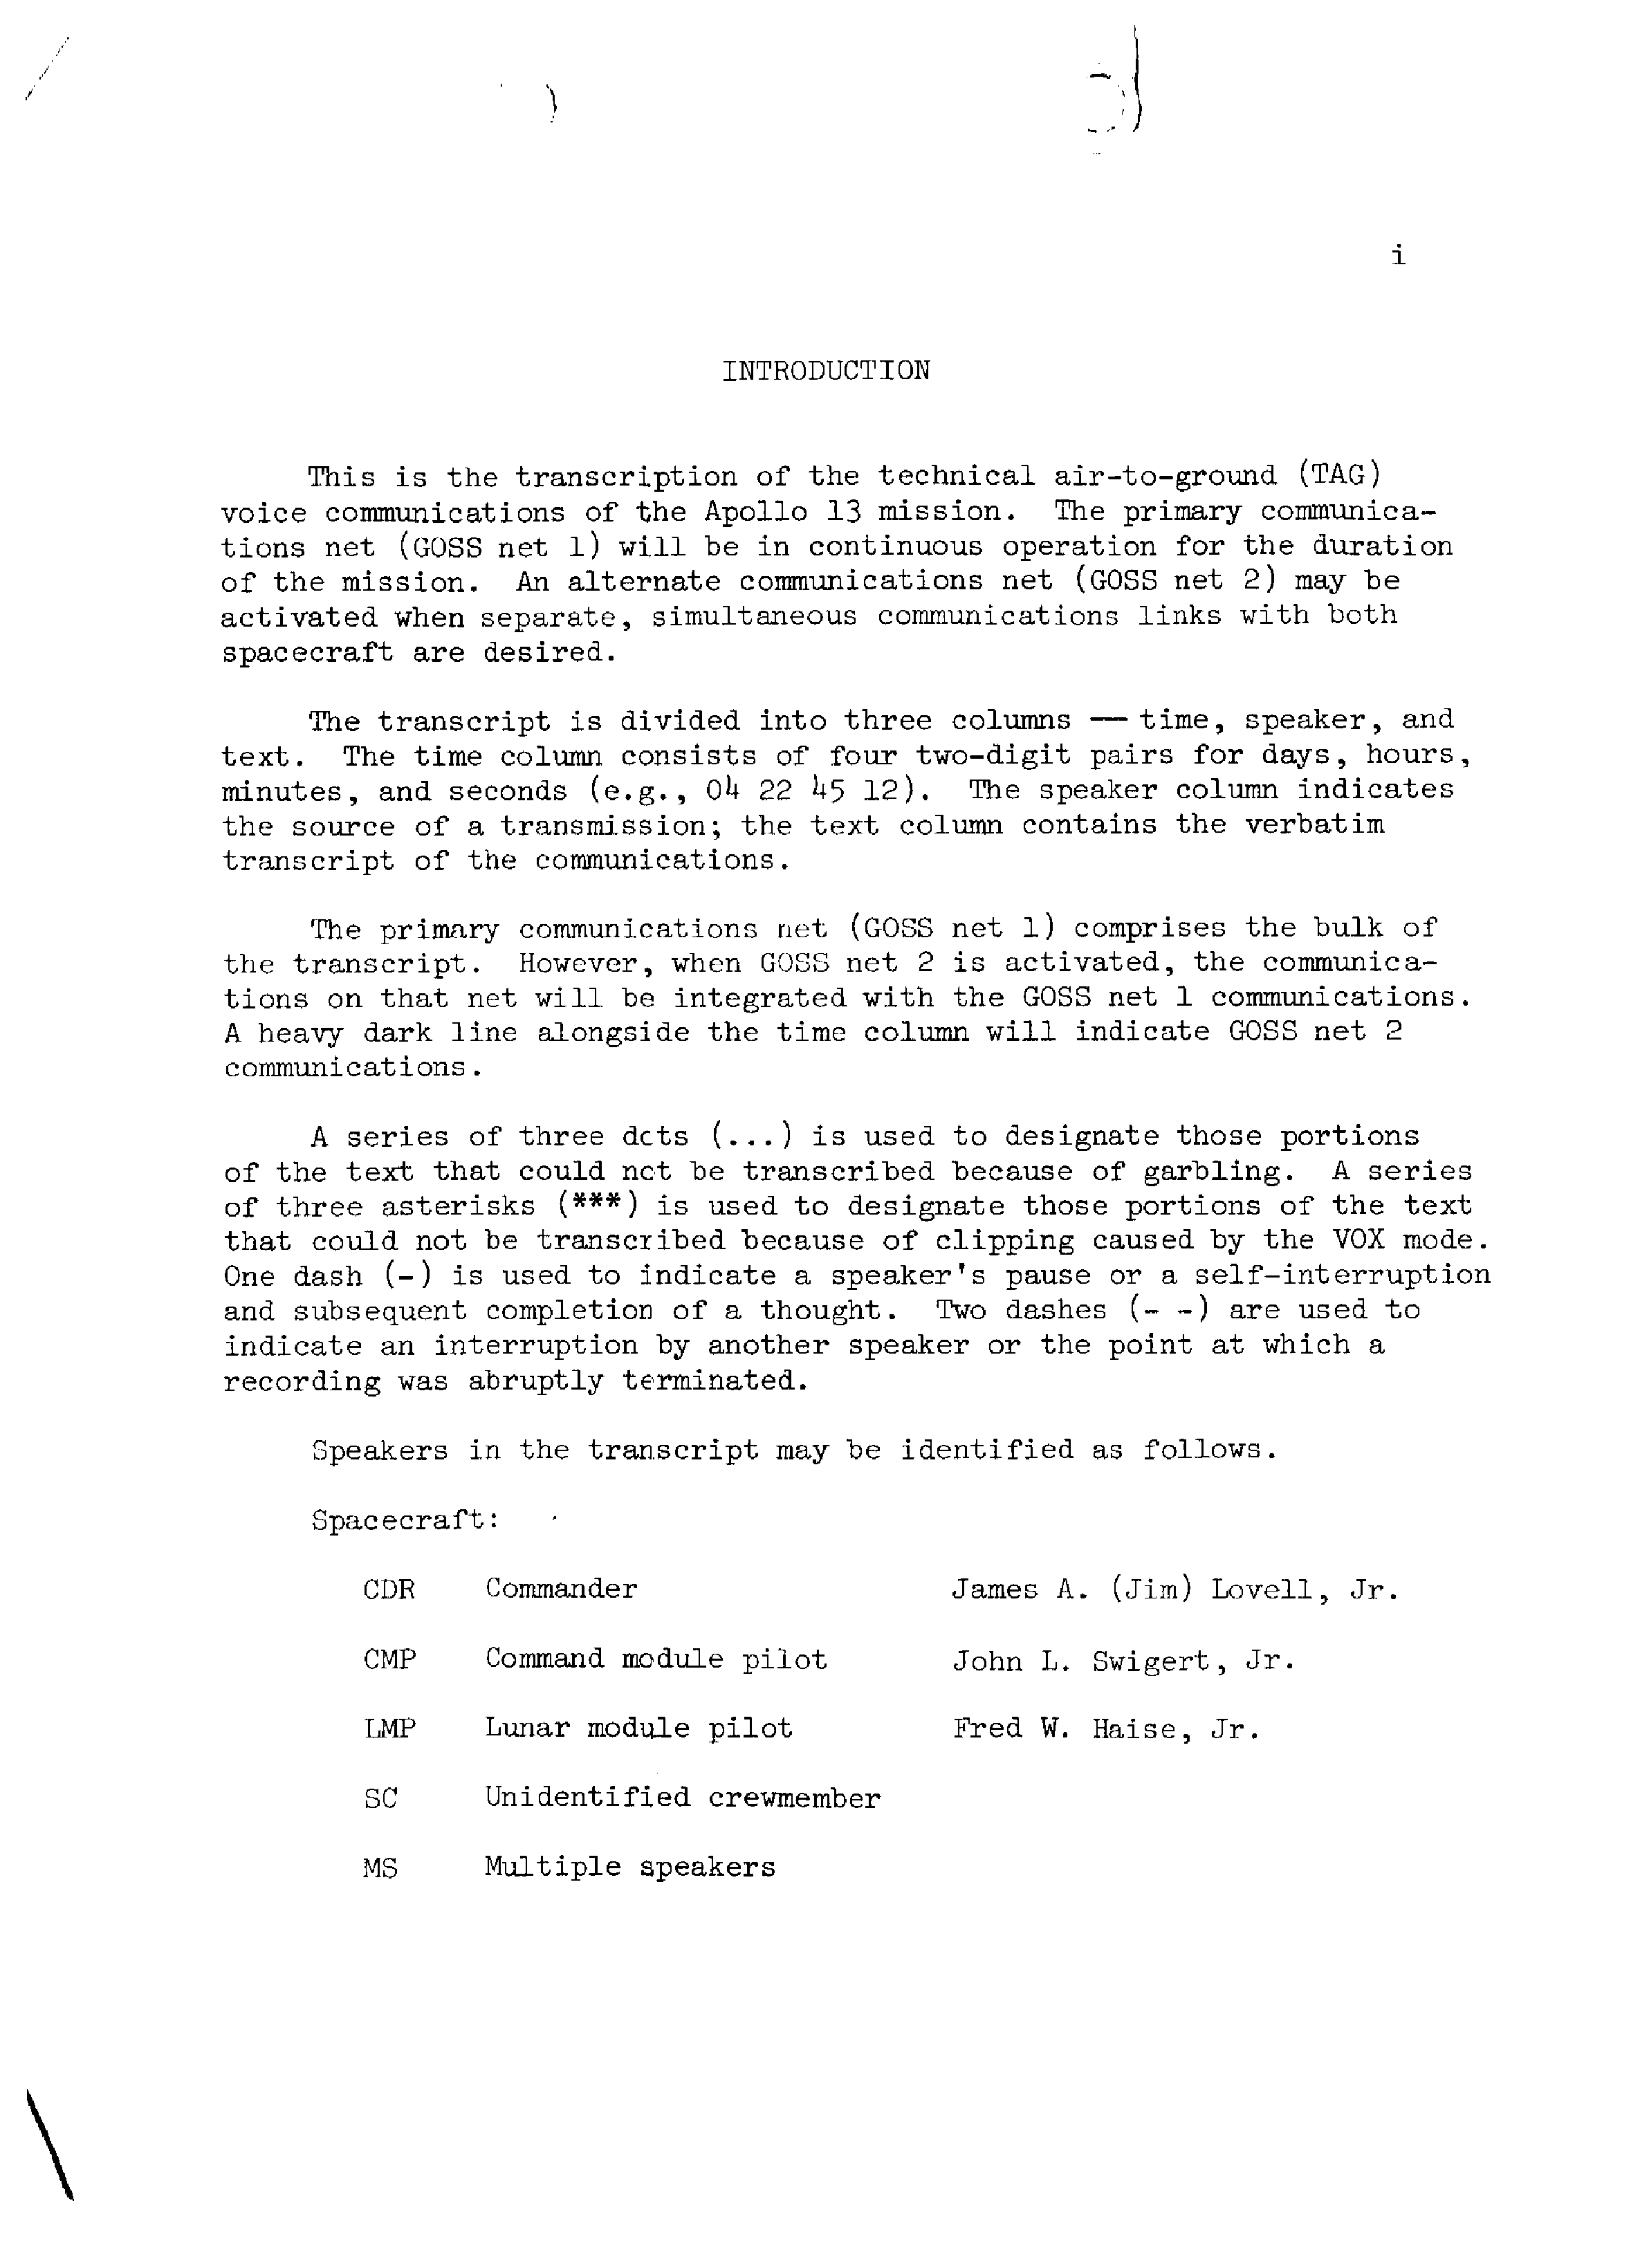 Page 2 of Apollo 13's original transcript